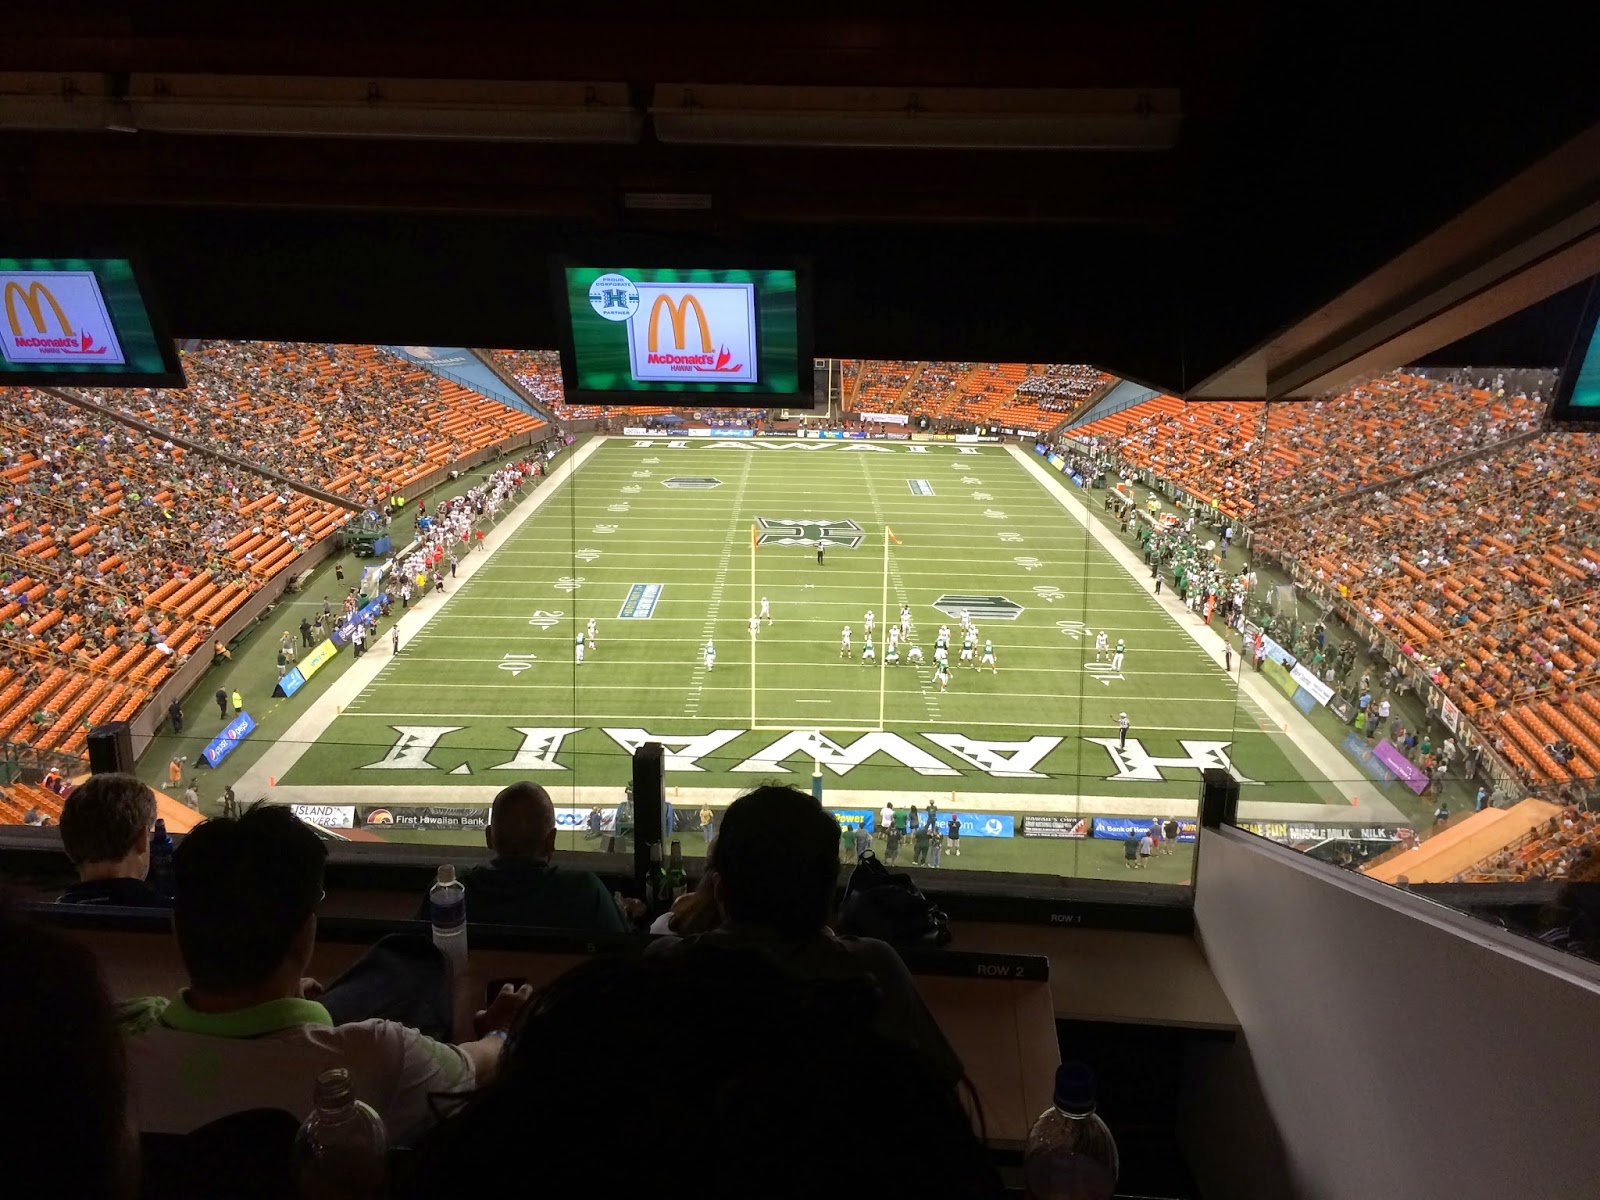 TASTE OF HAWAII: UNIVERSITY OF HAWAII FOOTBALL - ALOHA